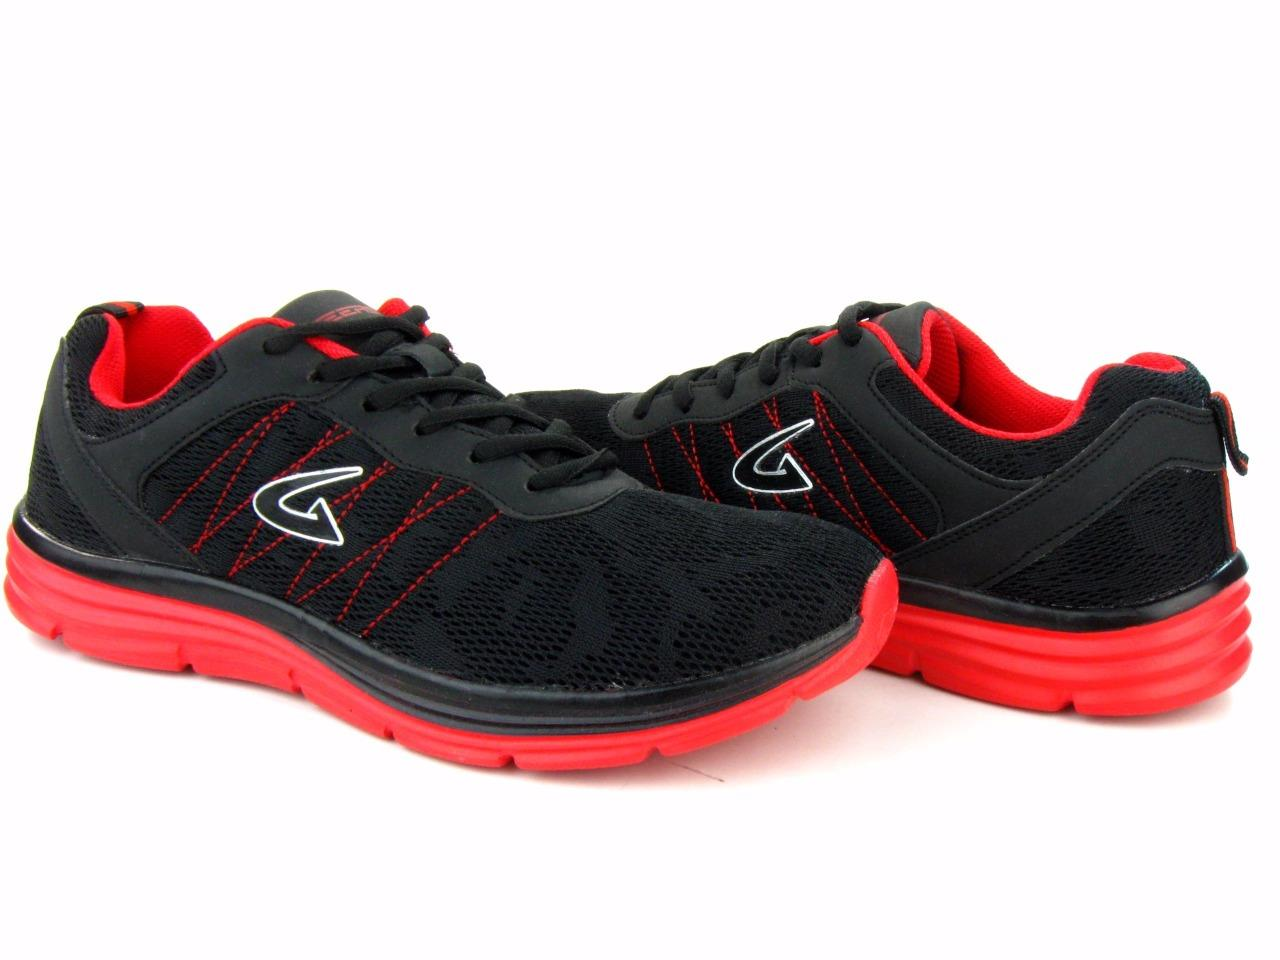 Men's Athletic Sneakers Light Weight Tennis Shoes Running ...